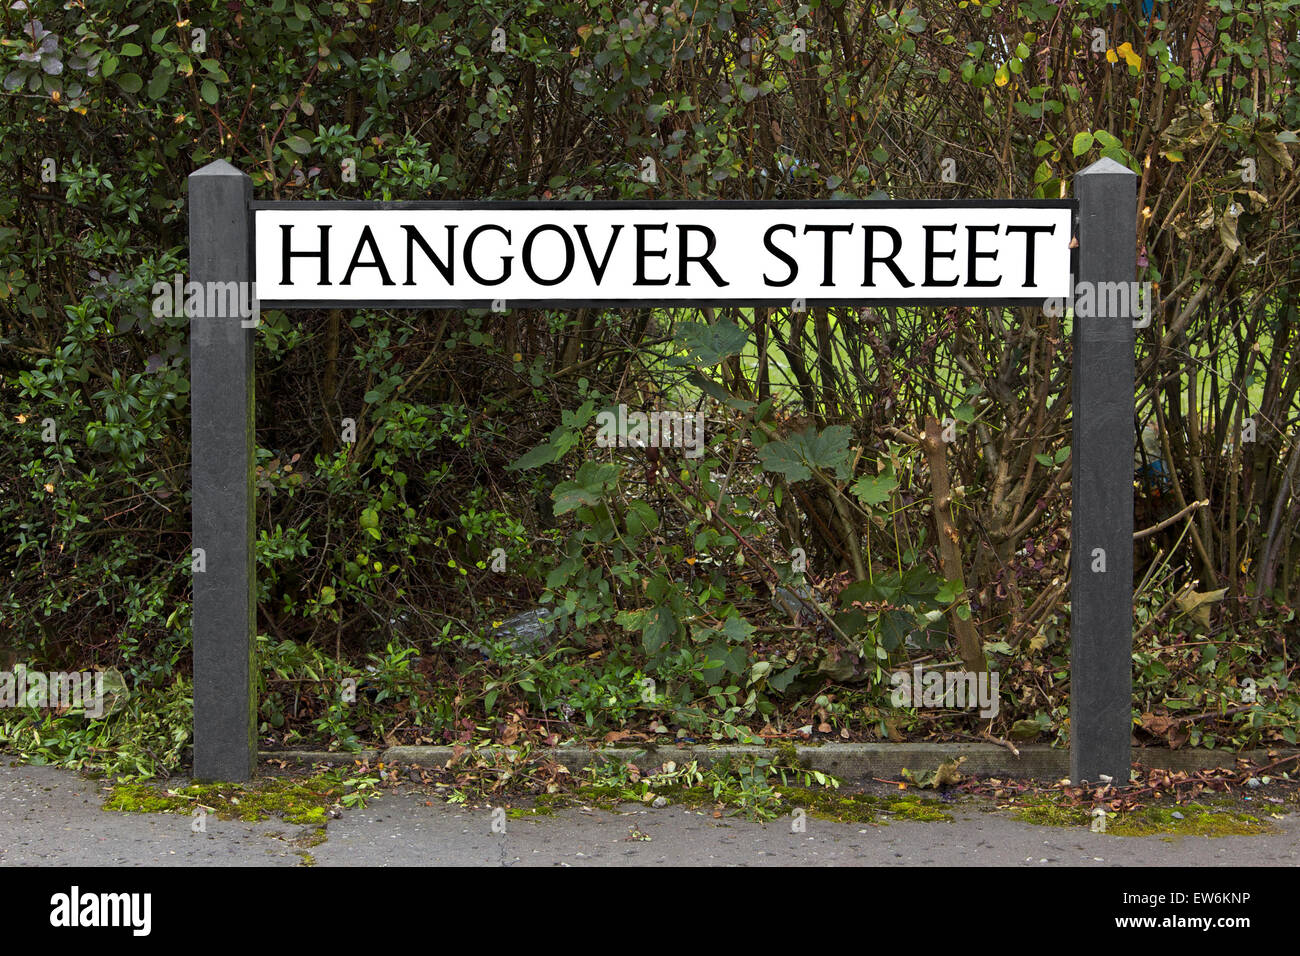 Funny street sign - Stock Image